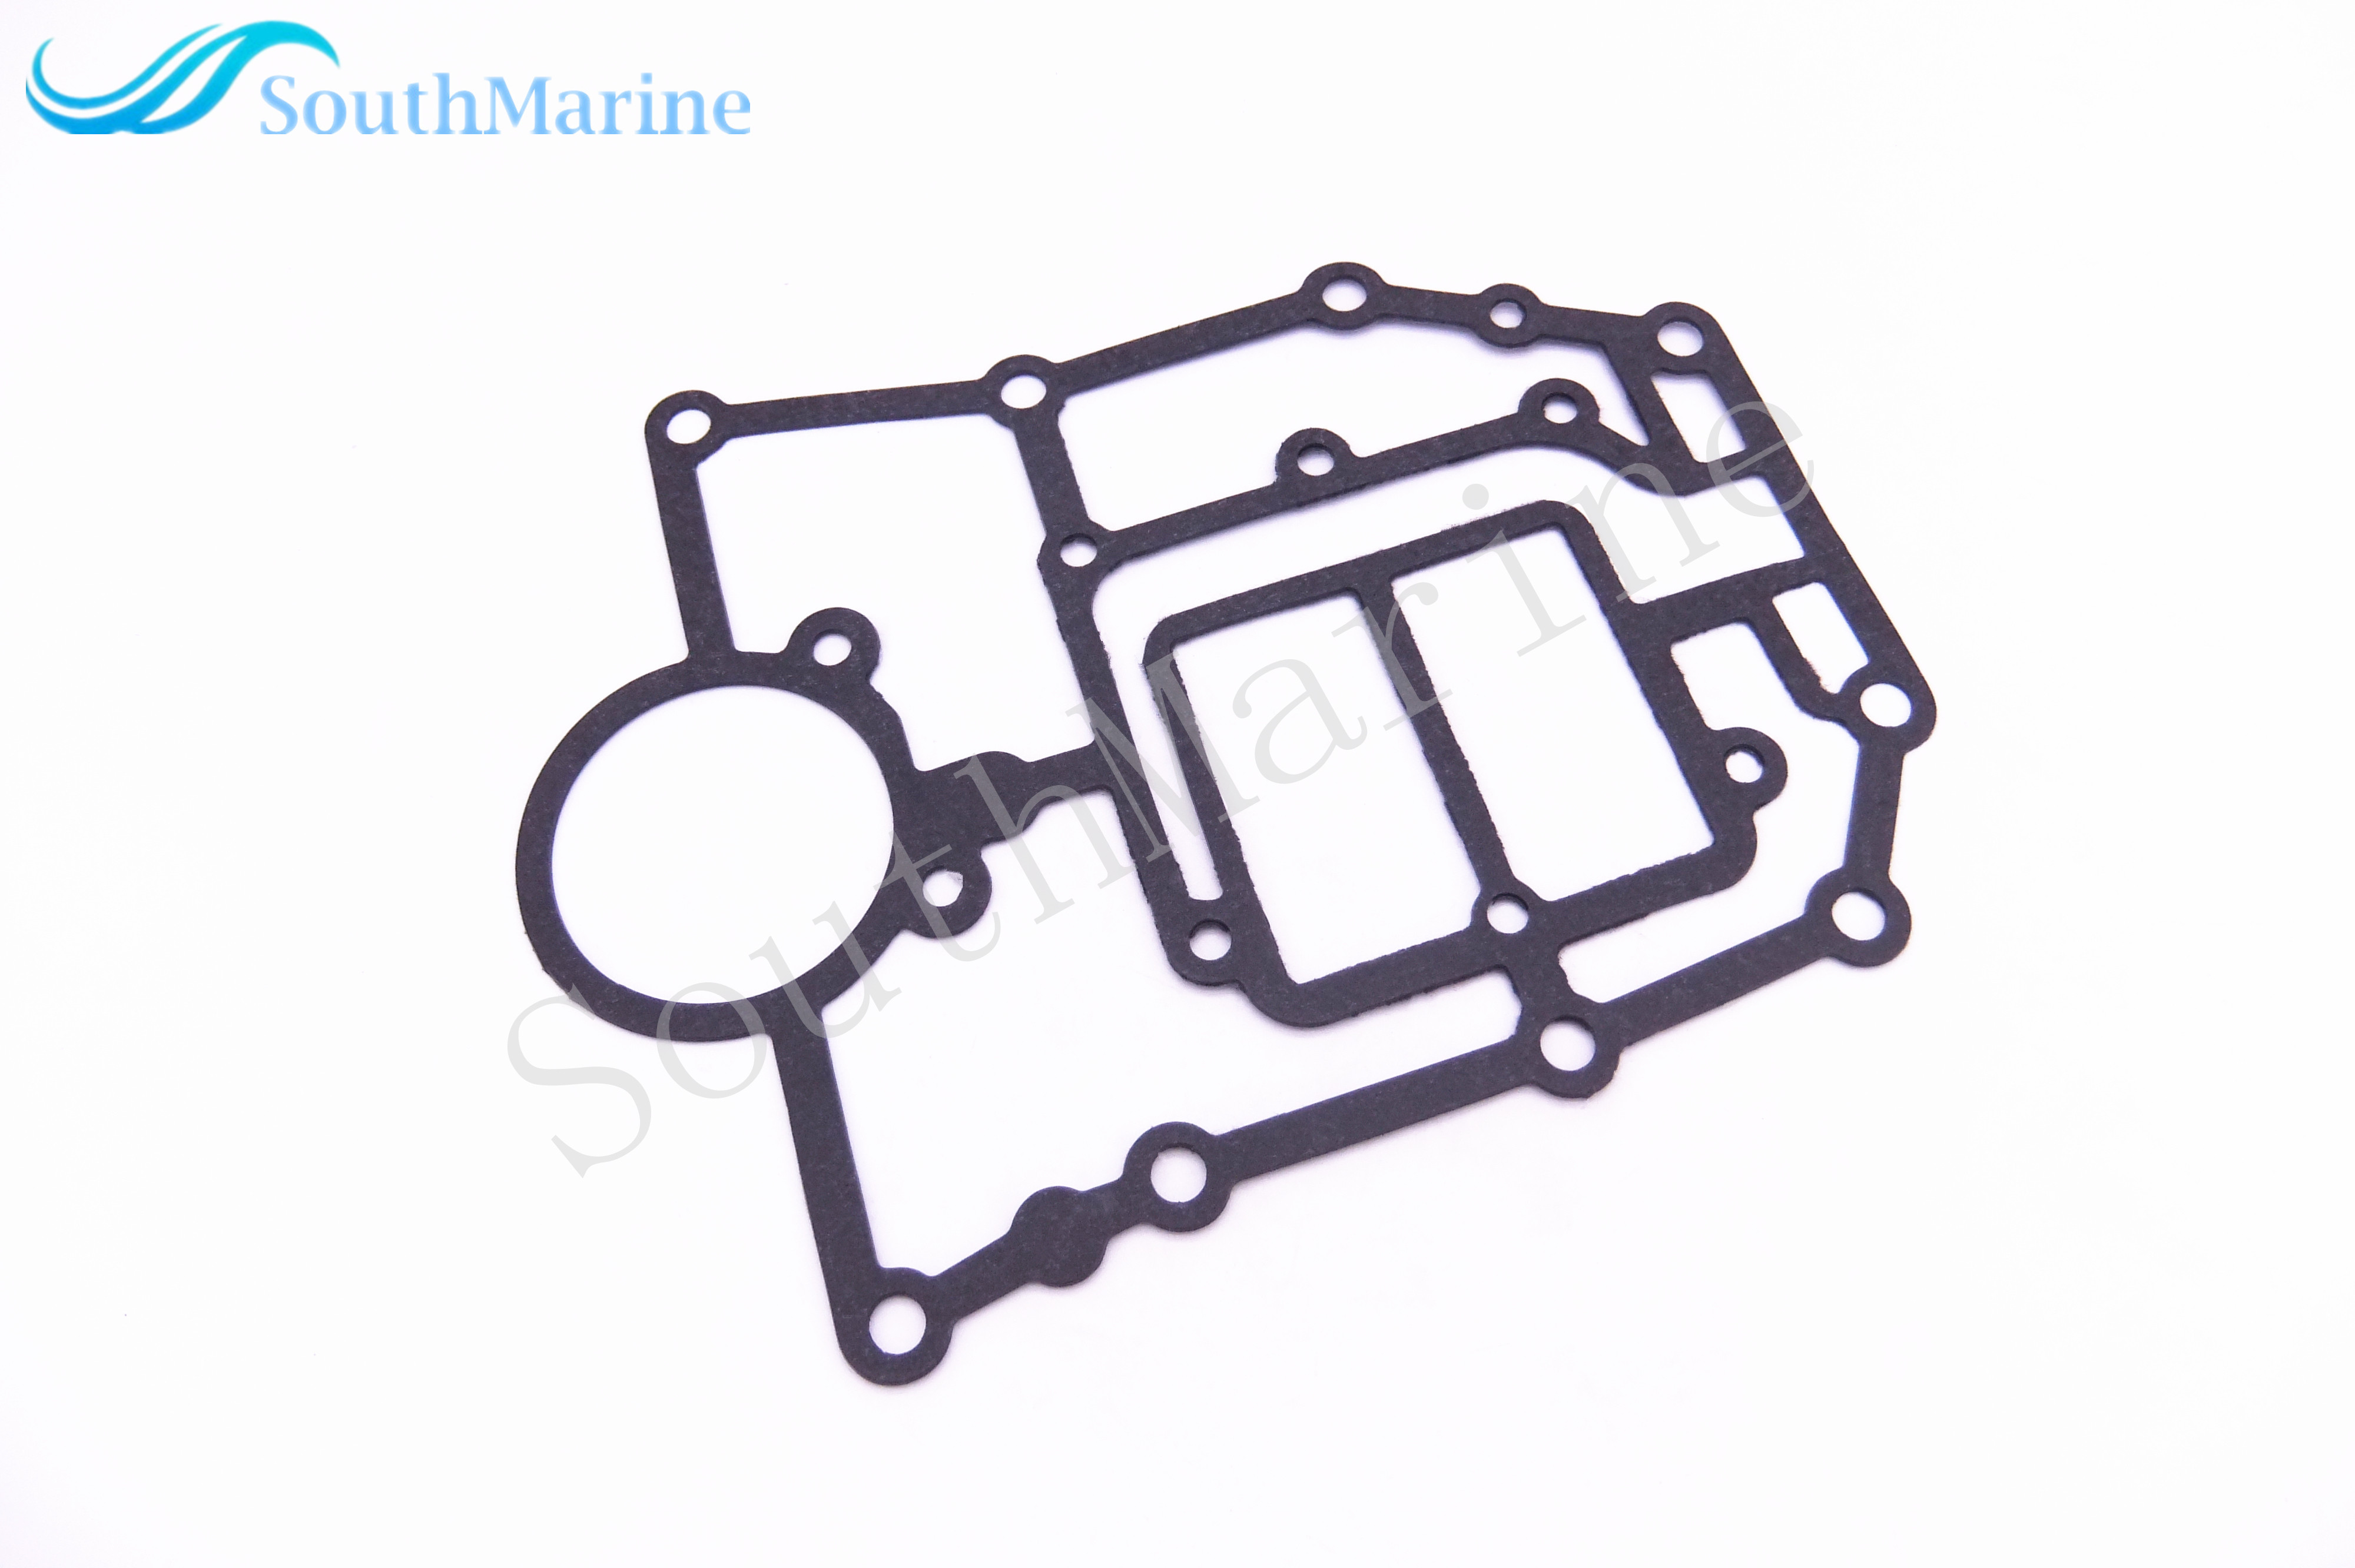 11433 94412 boat motor gasket under oil seal for suzuki 40hp dt40 outboard engine 11433 94411 in boat engine from automobiles motorcycles on  [ 4000 x 2664 Pixel ]